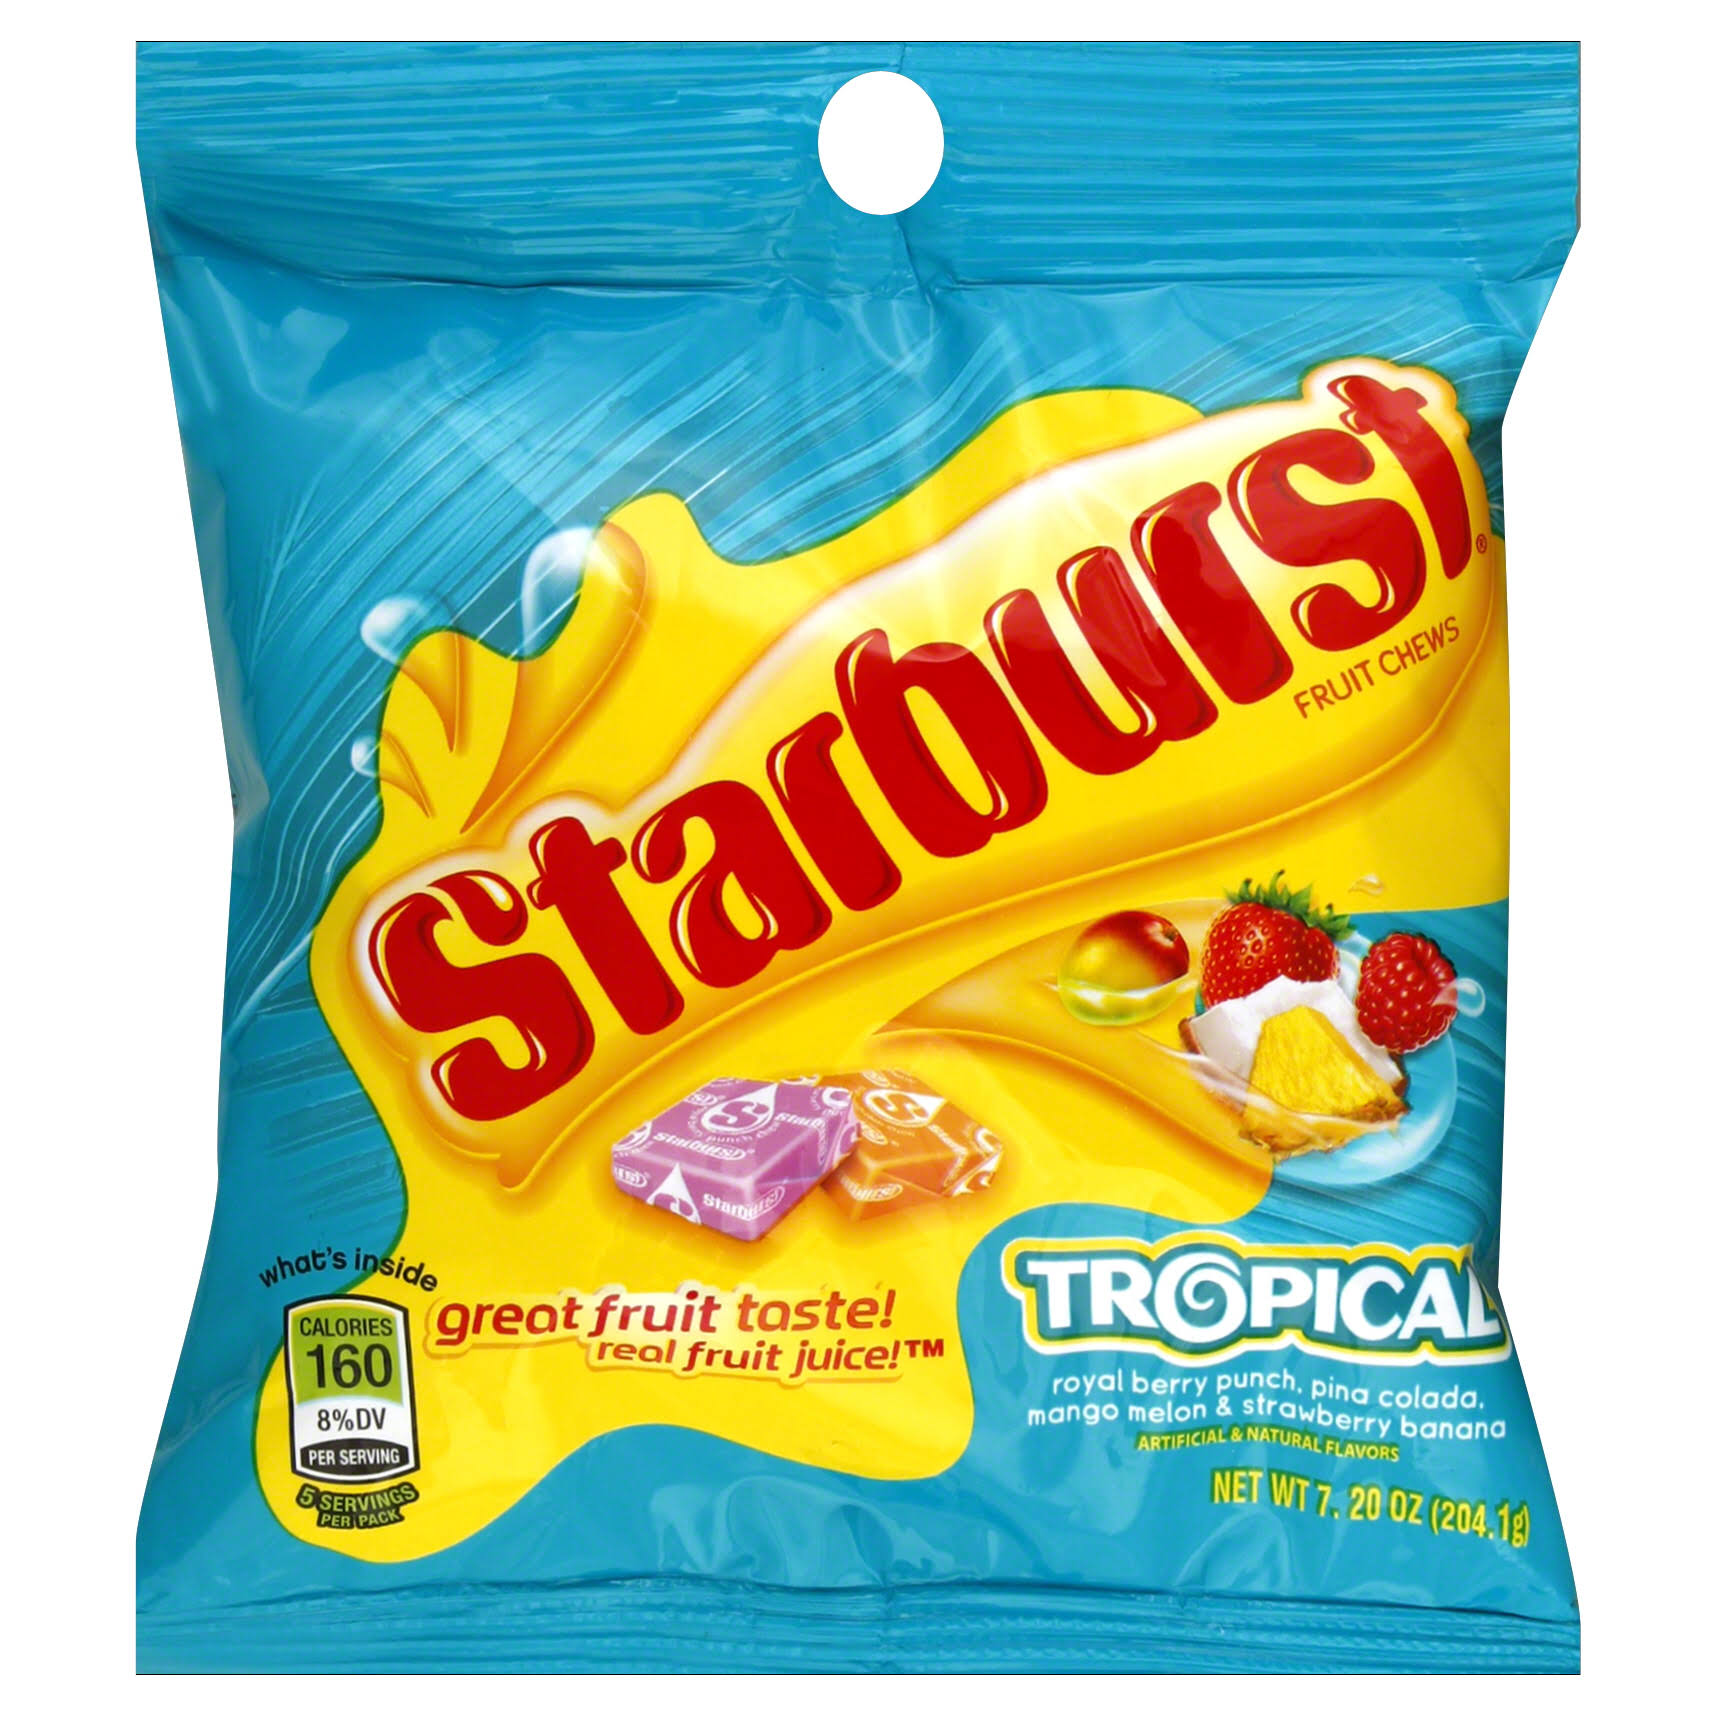 Starburst Fruit Chew Candy - Tropical, 7.2oz, 12ct